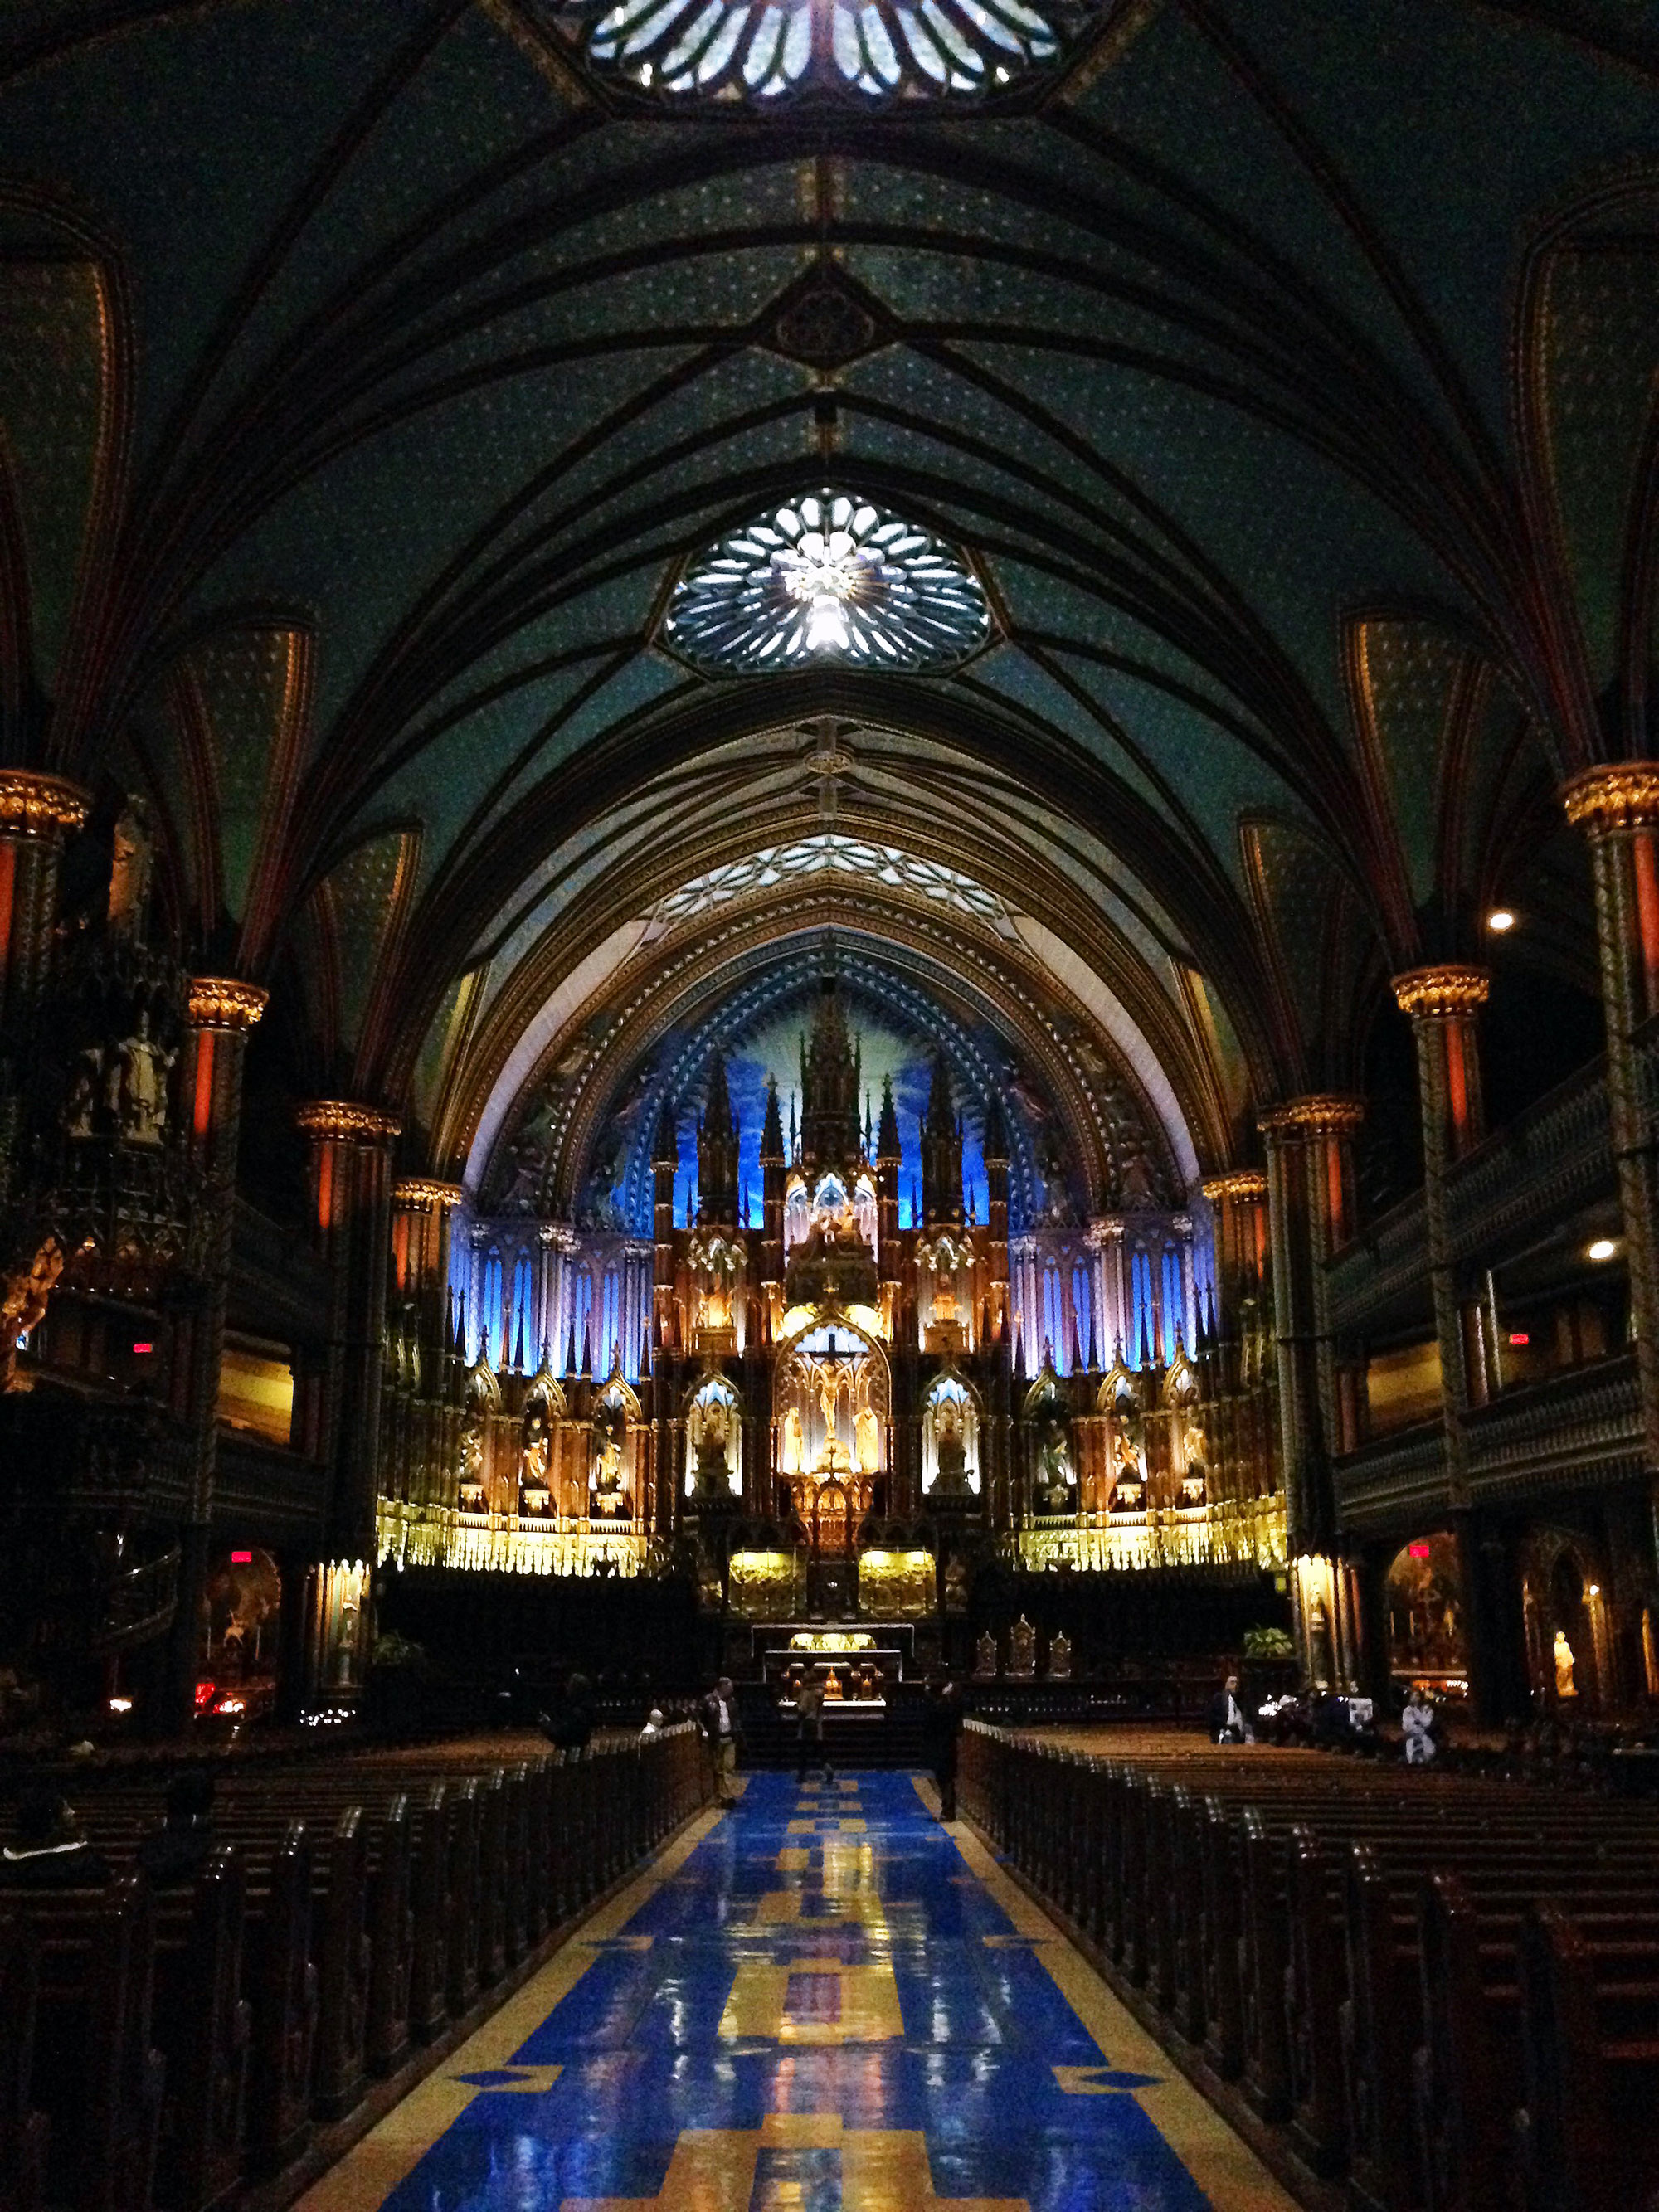 Montreal's Notre Dame Basilica